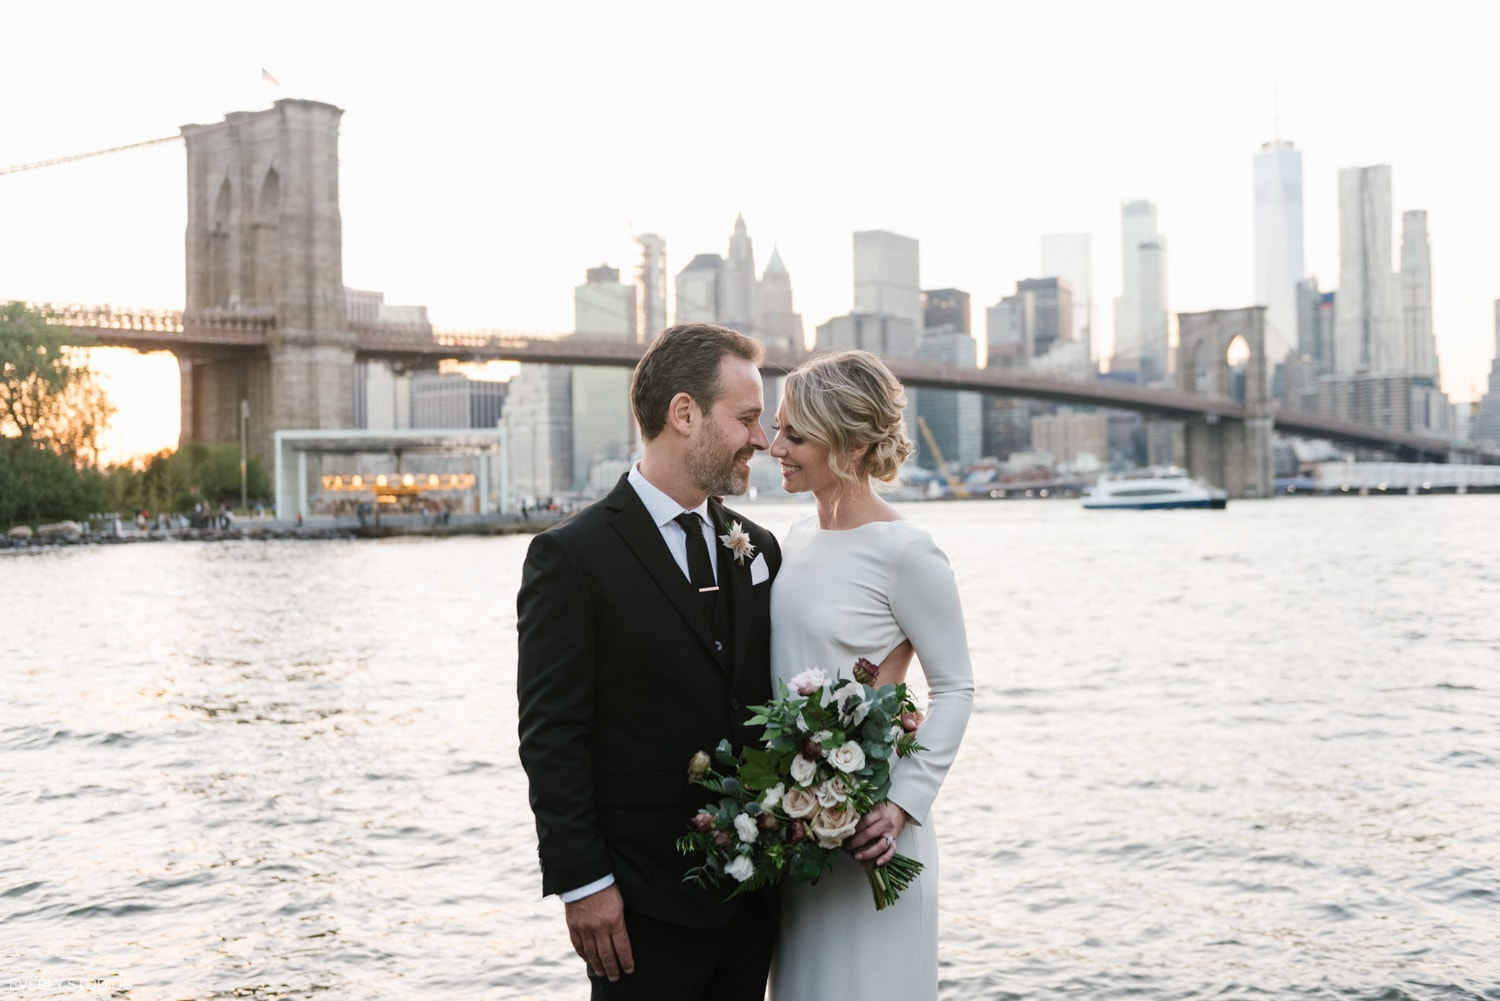 Brooklyn Bridge Park wedding photos at golden hour. Photos by Brooklyn wedding photographer Everly Studios, www.everlystudios.com